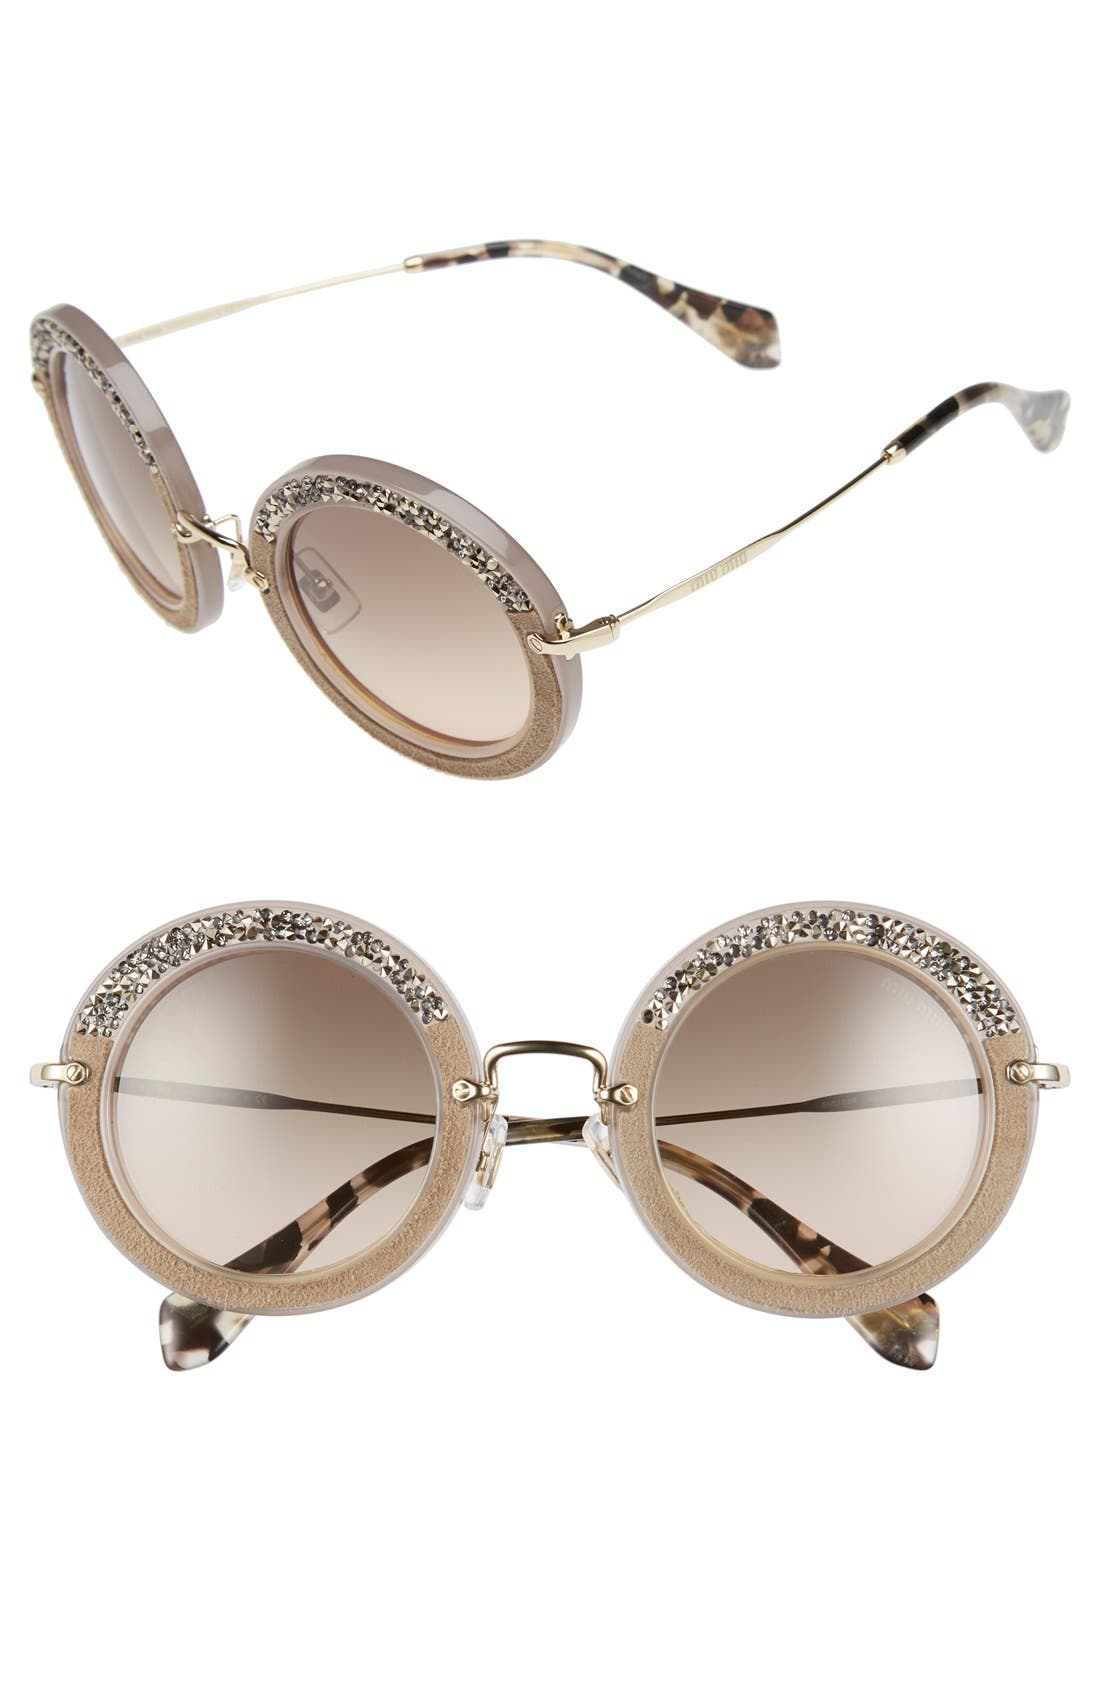 Main Image - Miu Miu 49mm Round Sunglasses